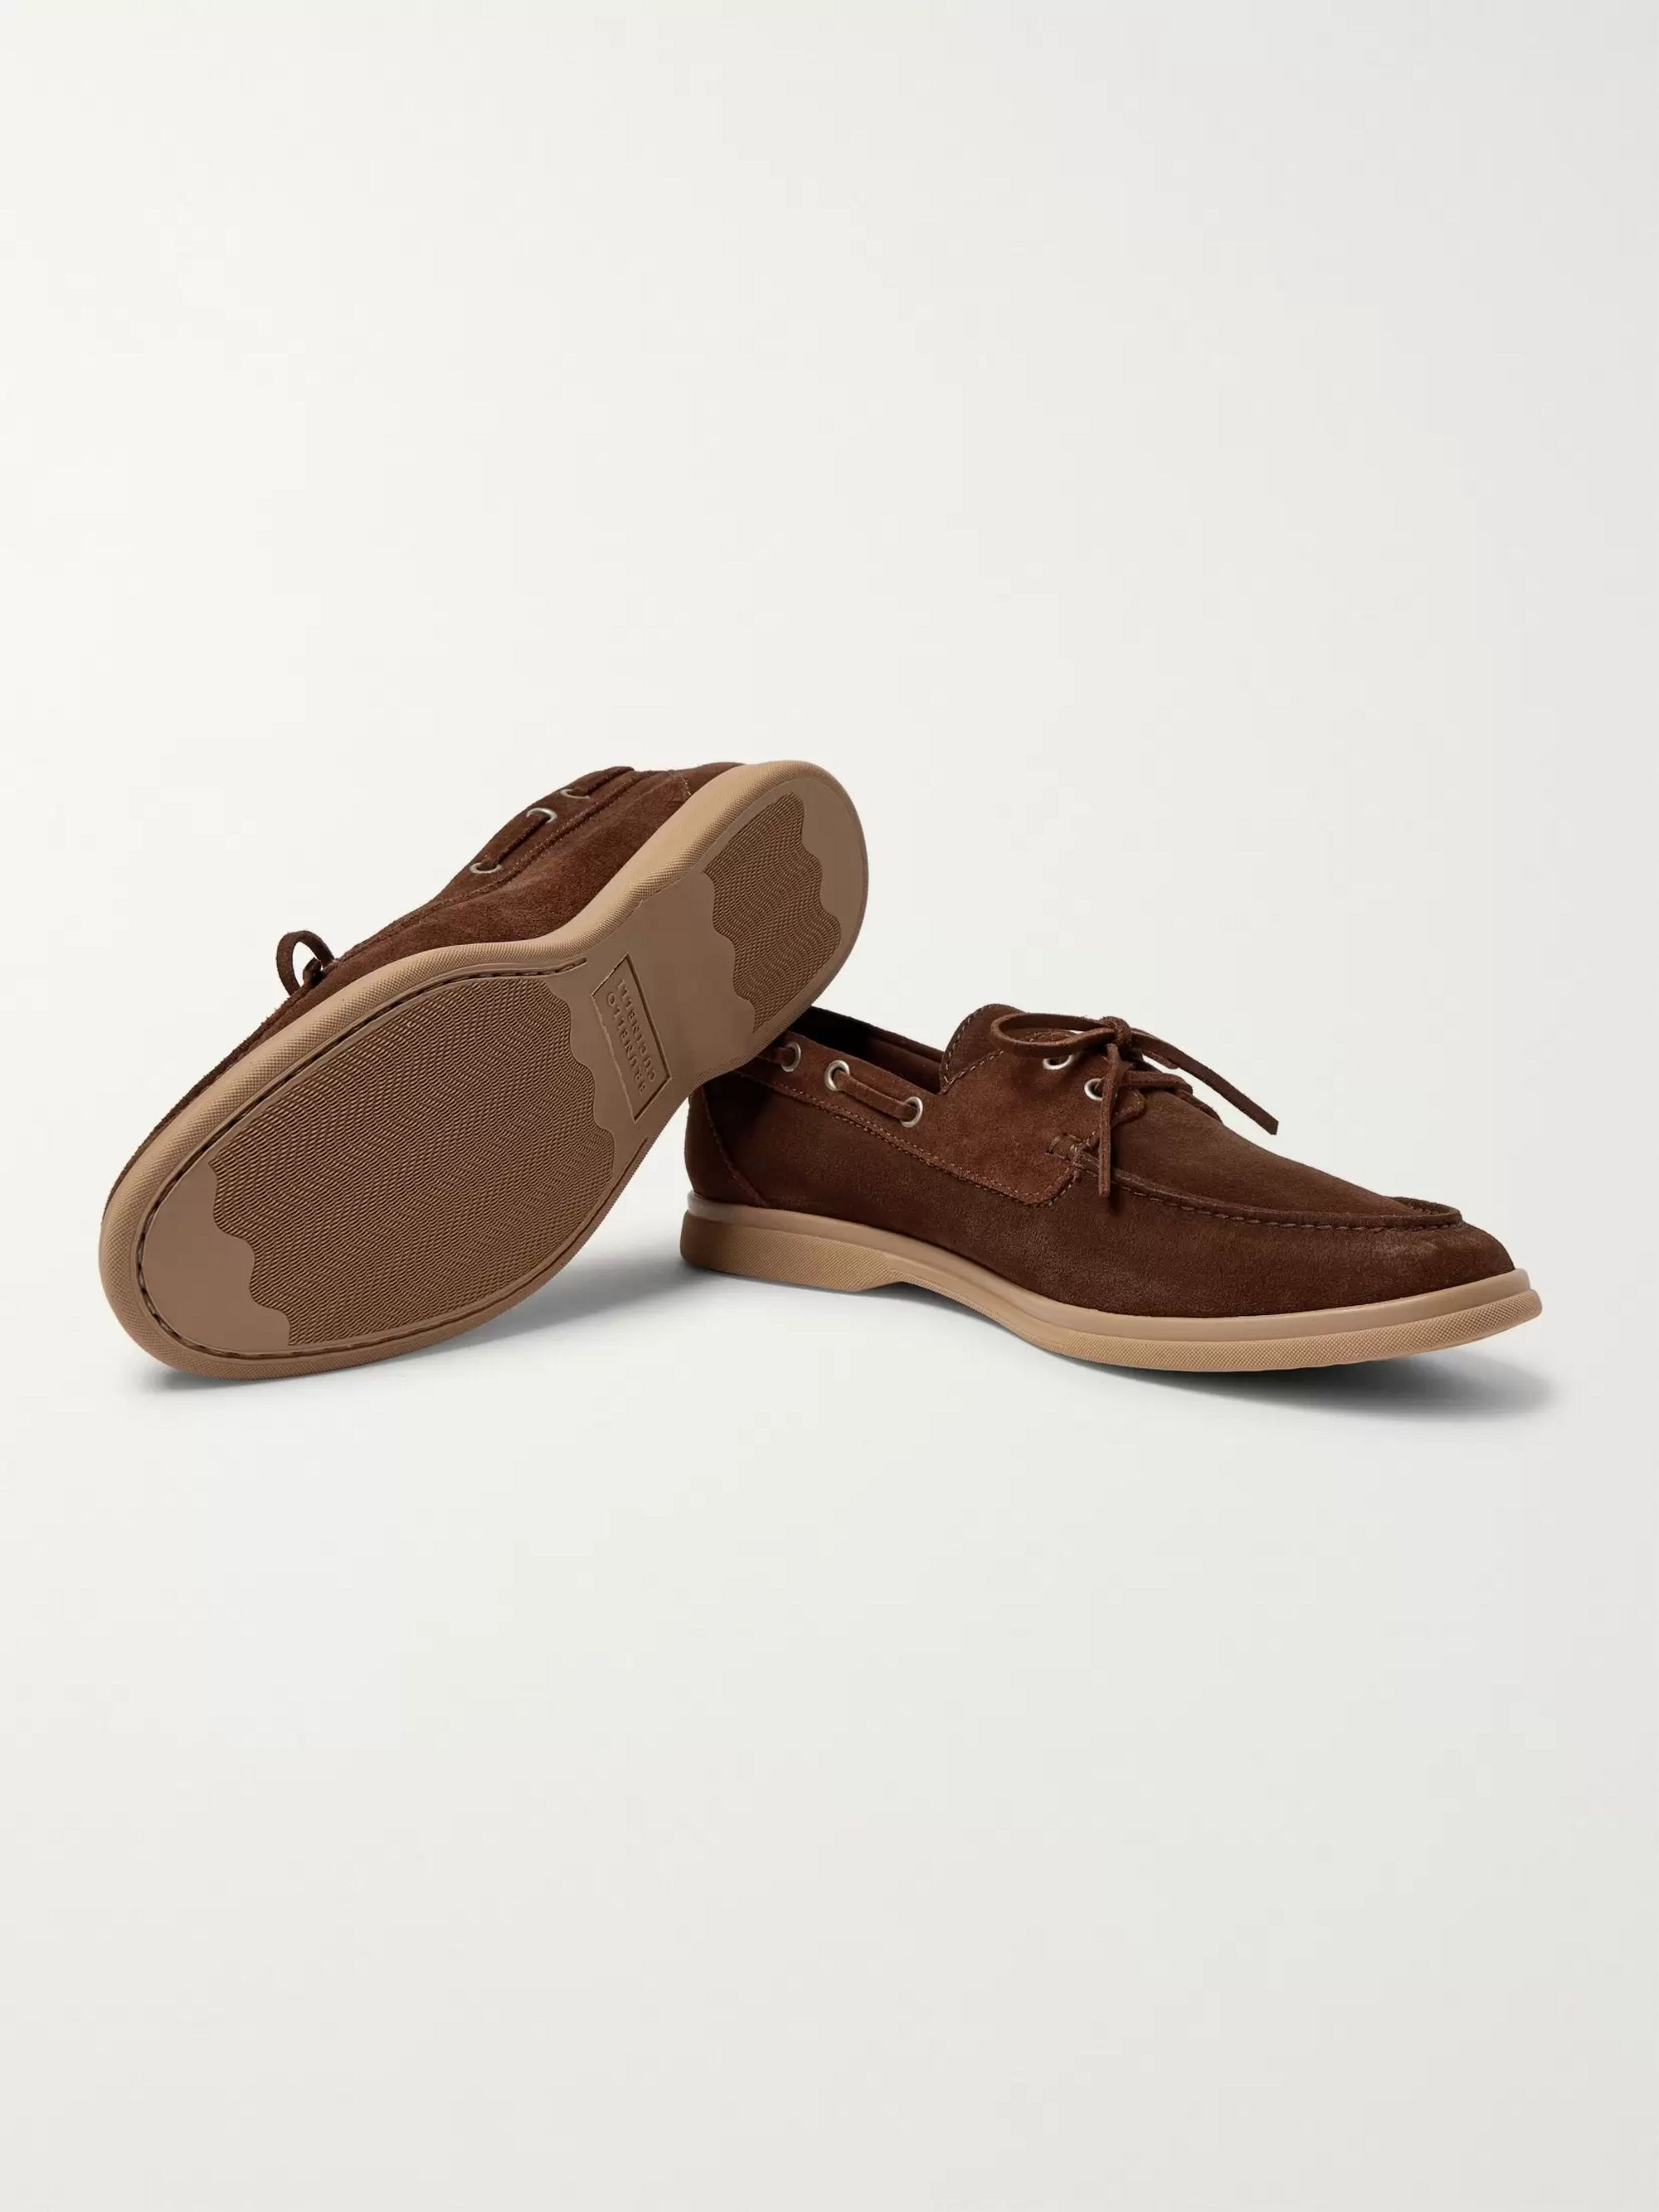 Brunello Cucinelli Suede Boat Shoes